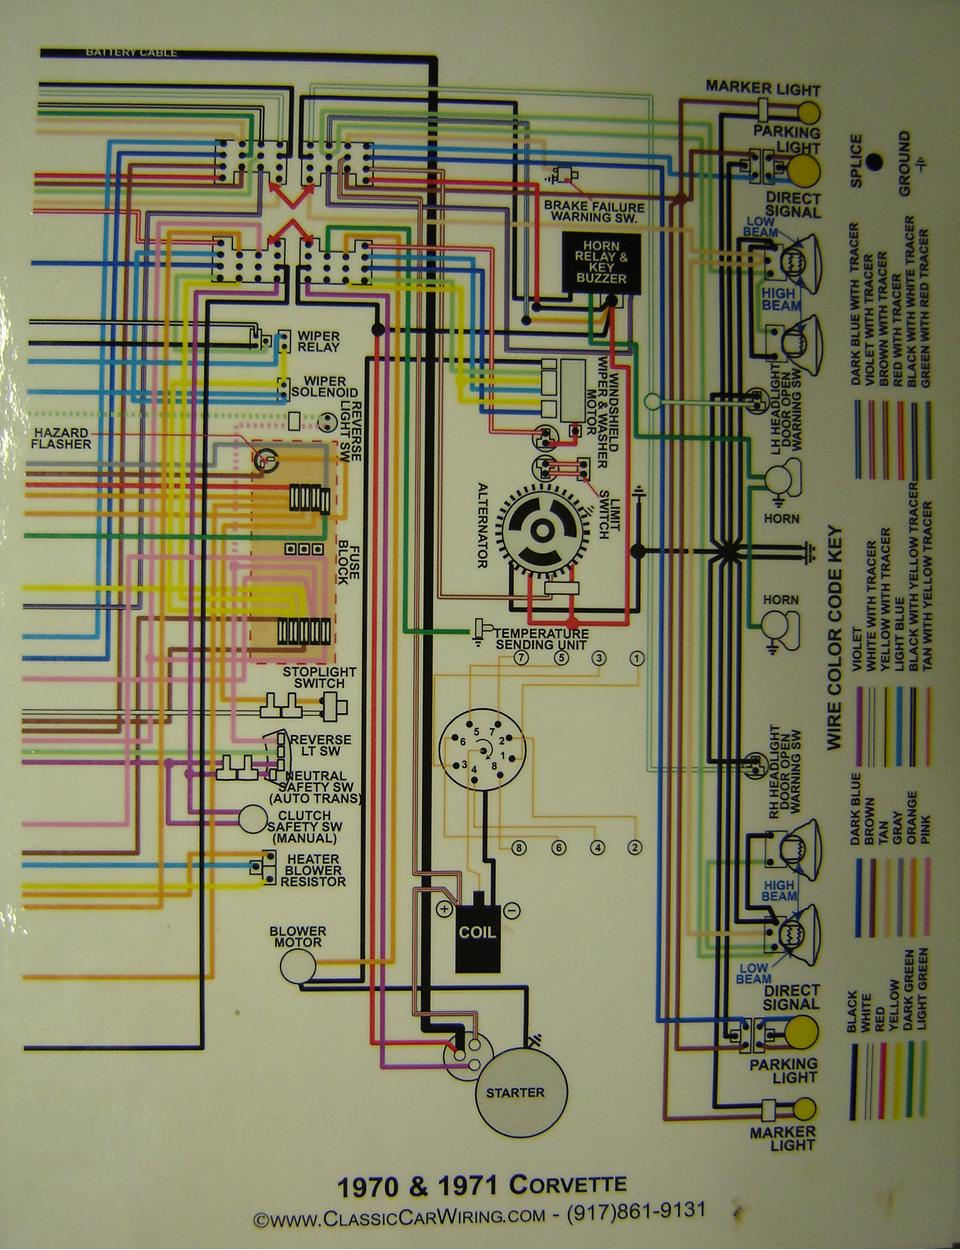 1970 71 corvette color wiring diagram B chevy diagrams c3 corvette wiring diagram at panicattacktreatment.co